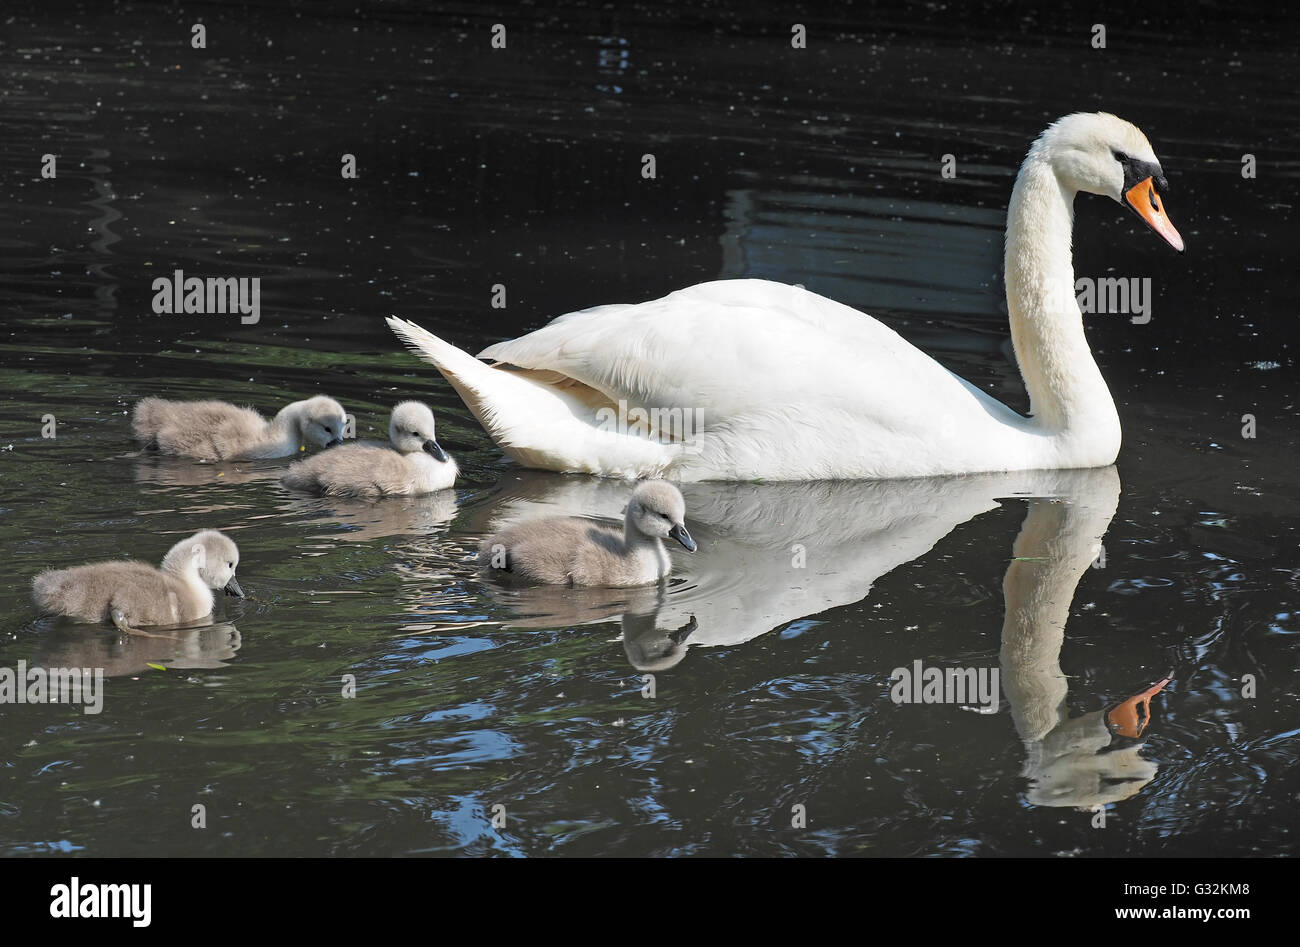 A view of a mother swan swimming with her baby cygnets alongside - Stock Image